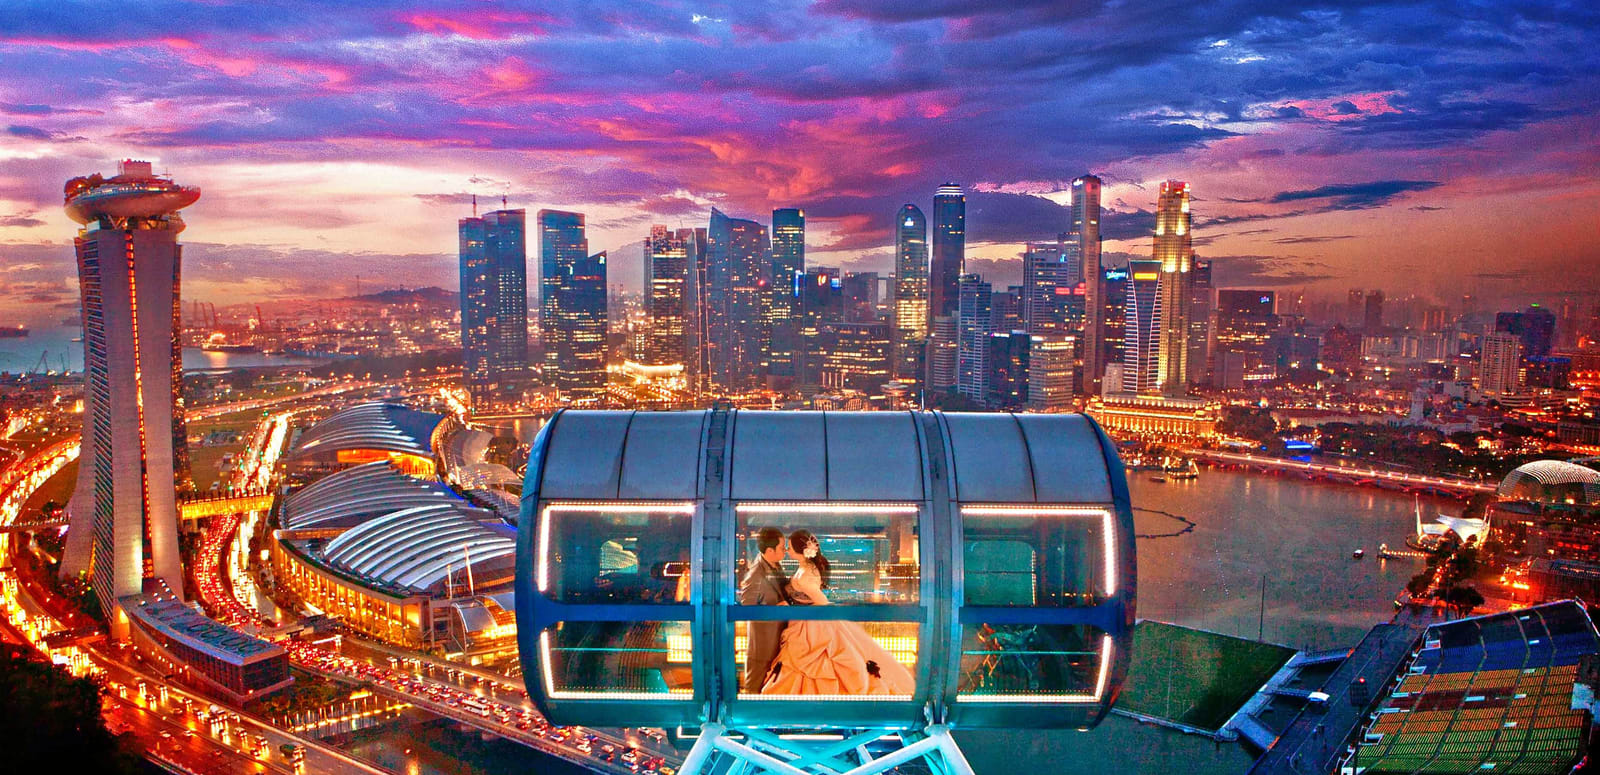 Marina Bay Sands ở Singapore